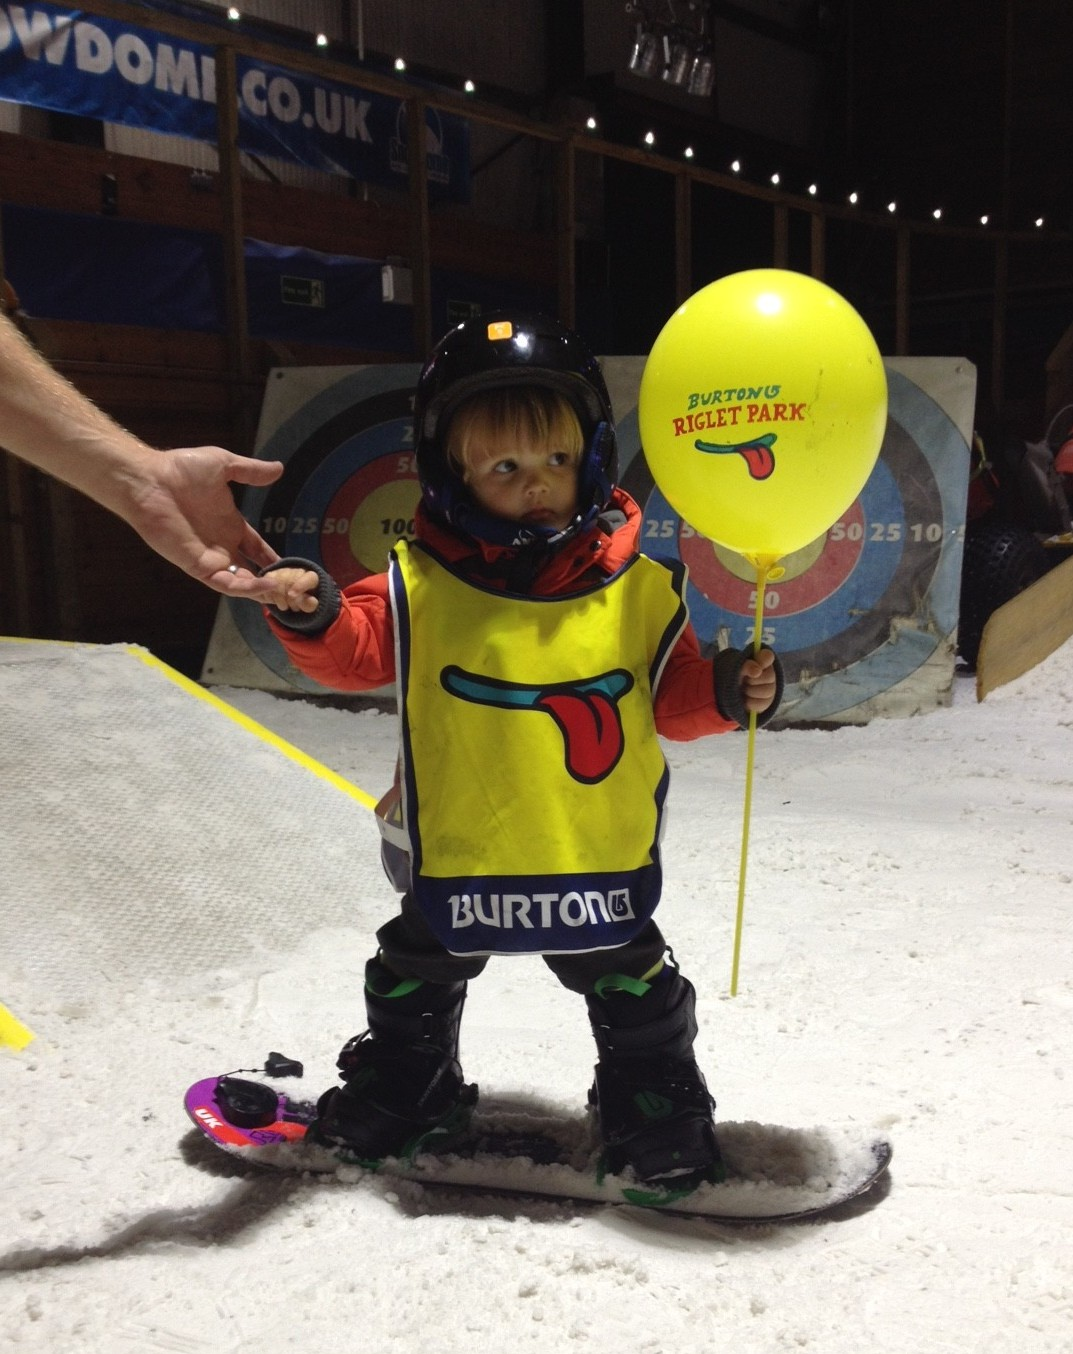 burton, riglet, mini shred, snowboarding